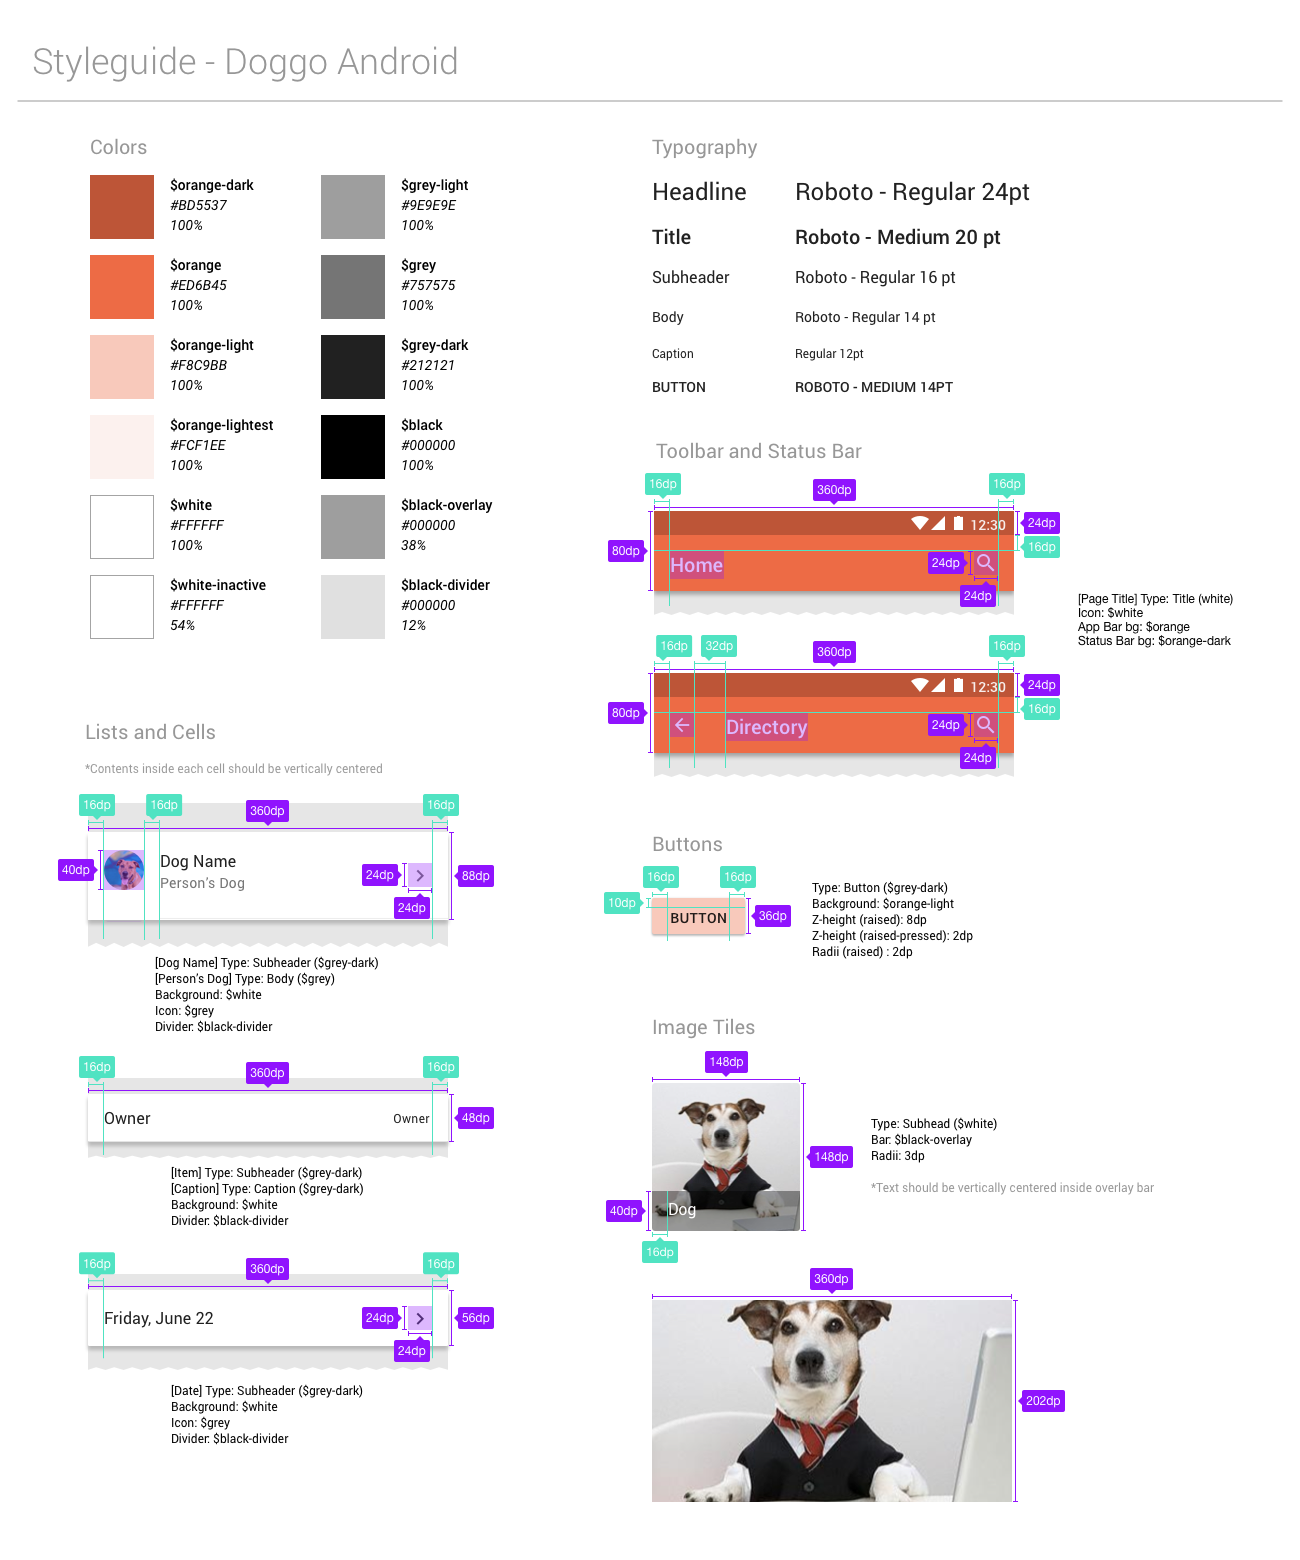 Doggo Android Style Guide